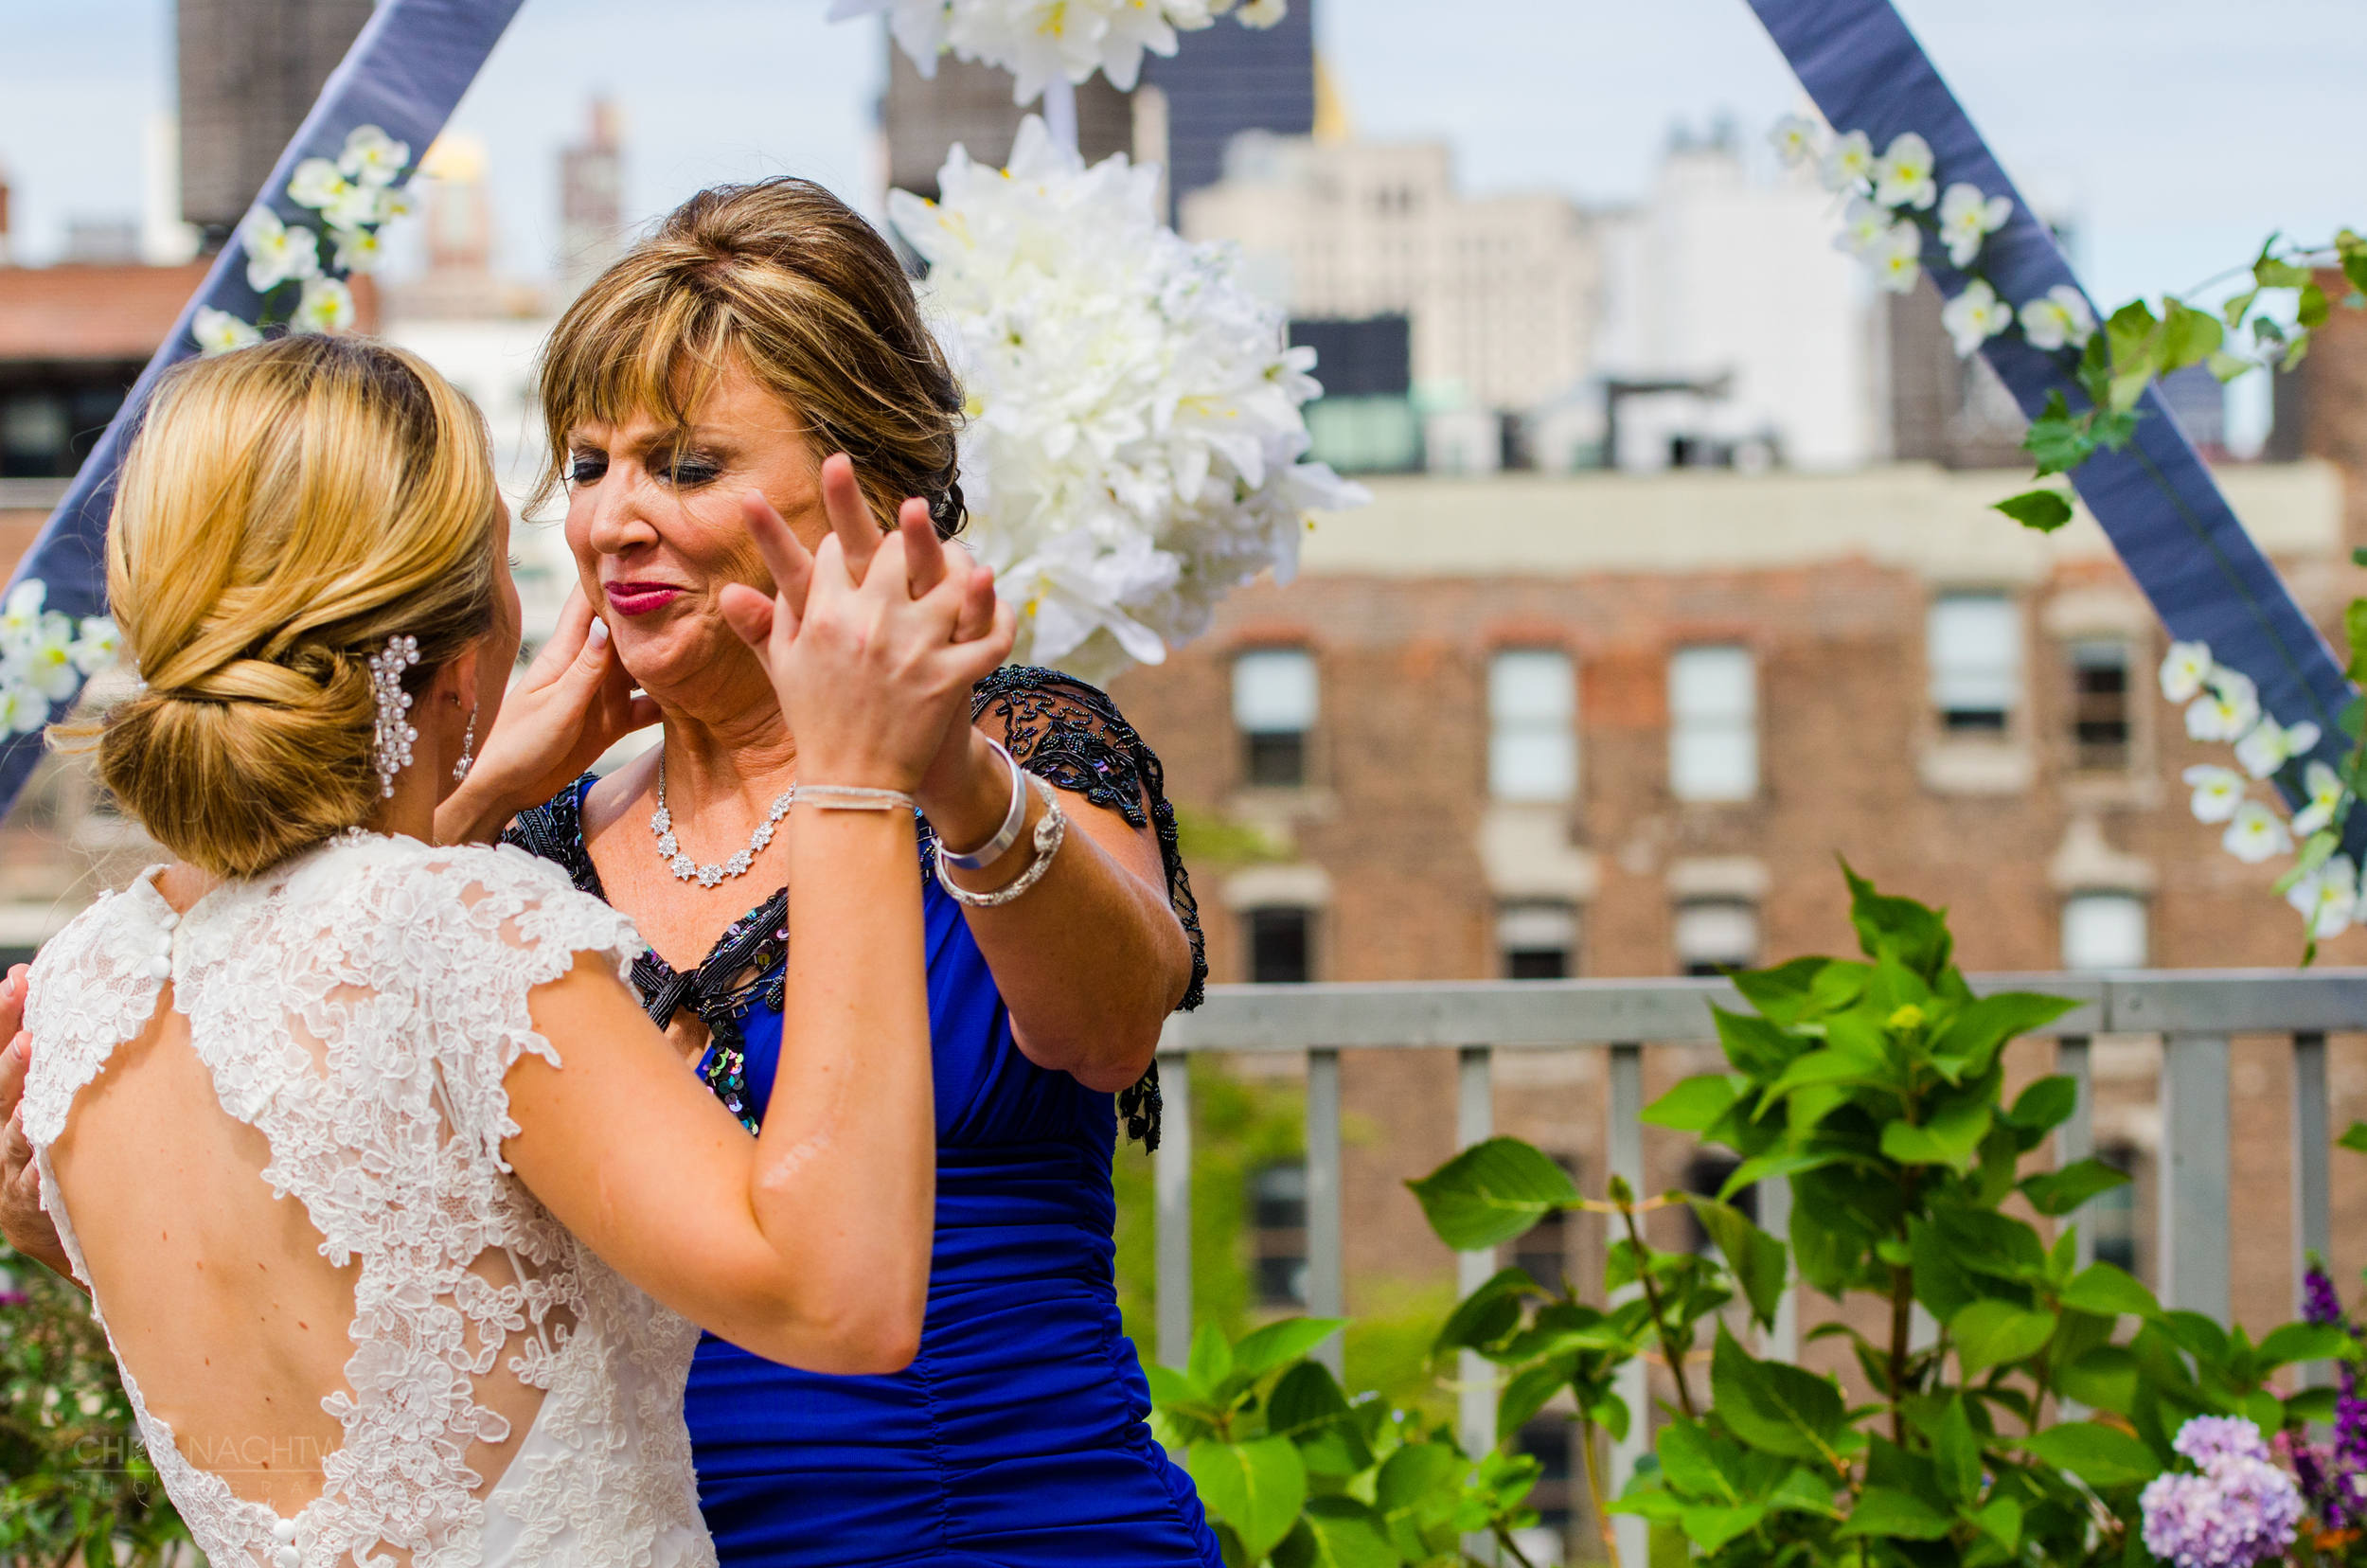 nyc-wedding-photographers-chris-nachtwey.jpg